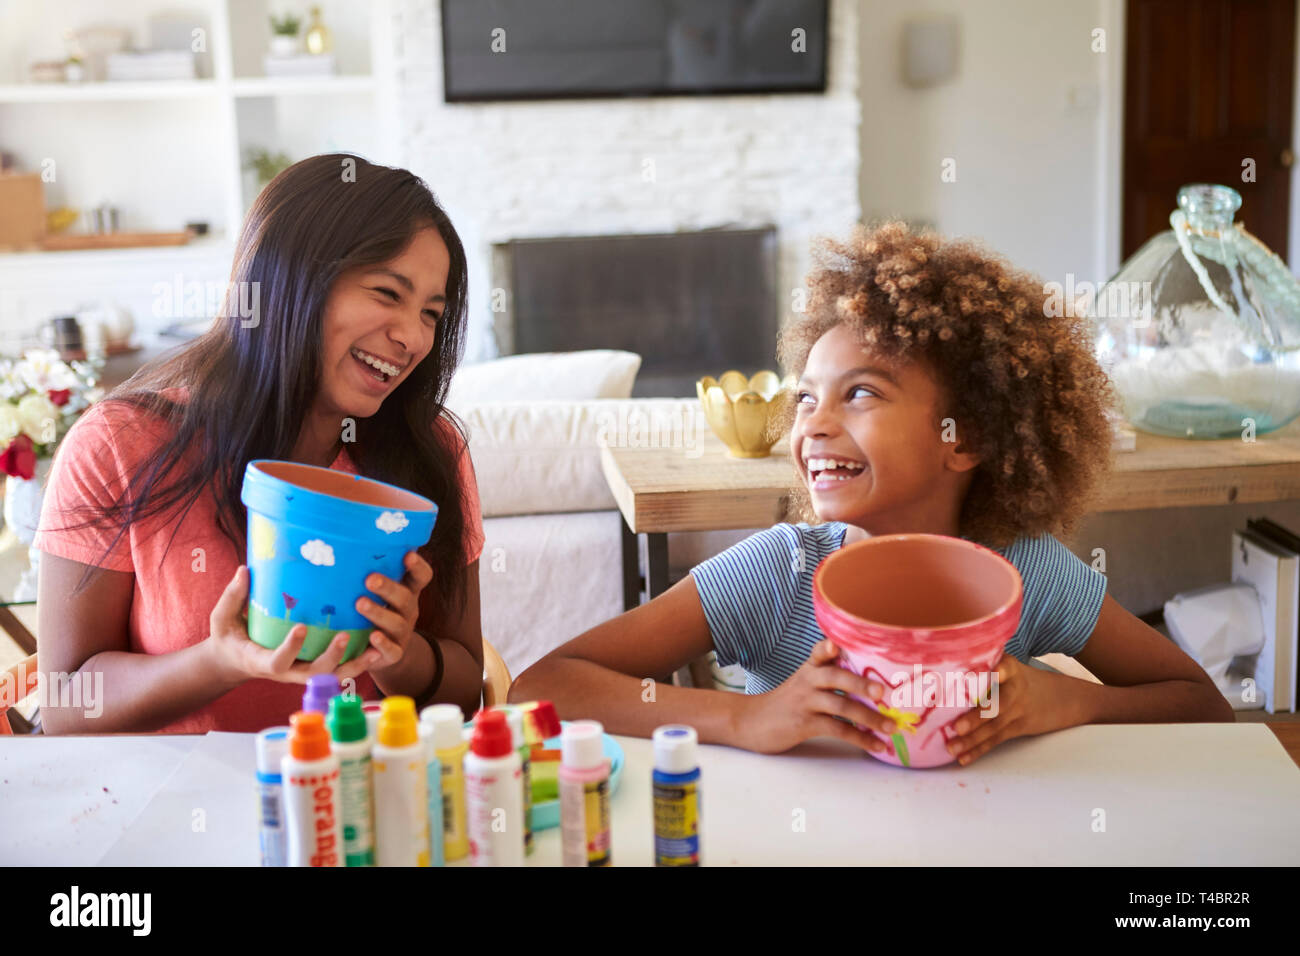 Happy pre-teen girl and her older girlfriend holding plant pots that they've decorated with paints at home, smiling at each other, close up - Stock Image